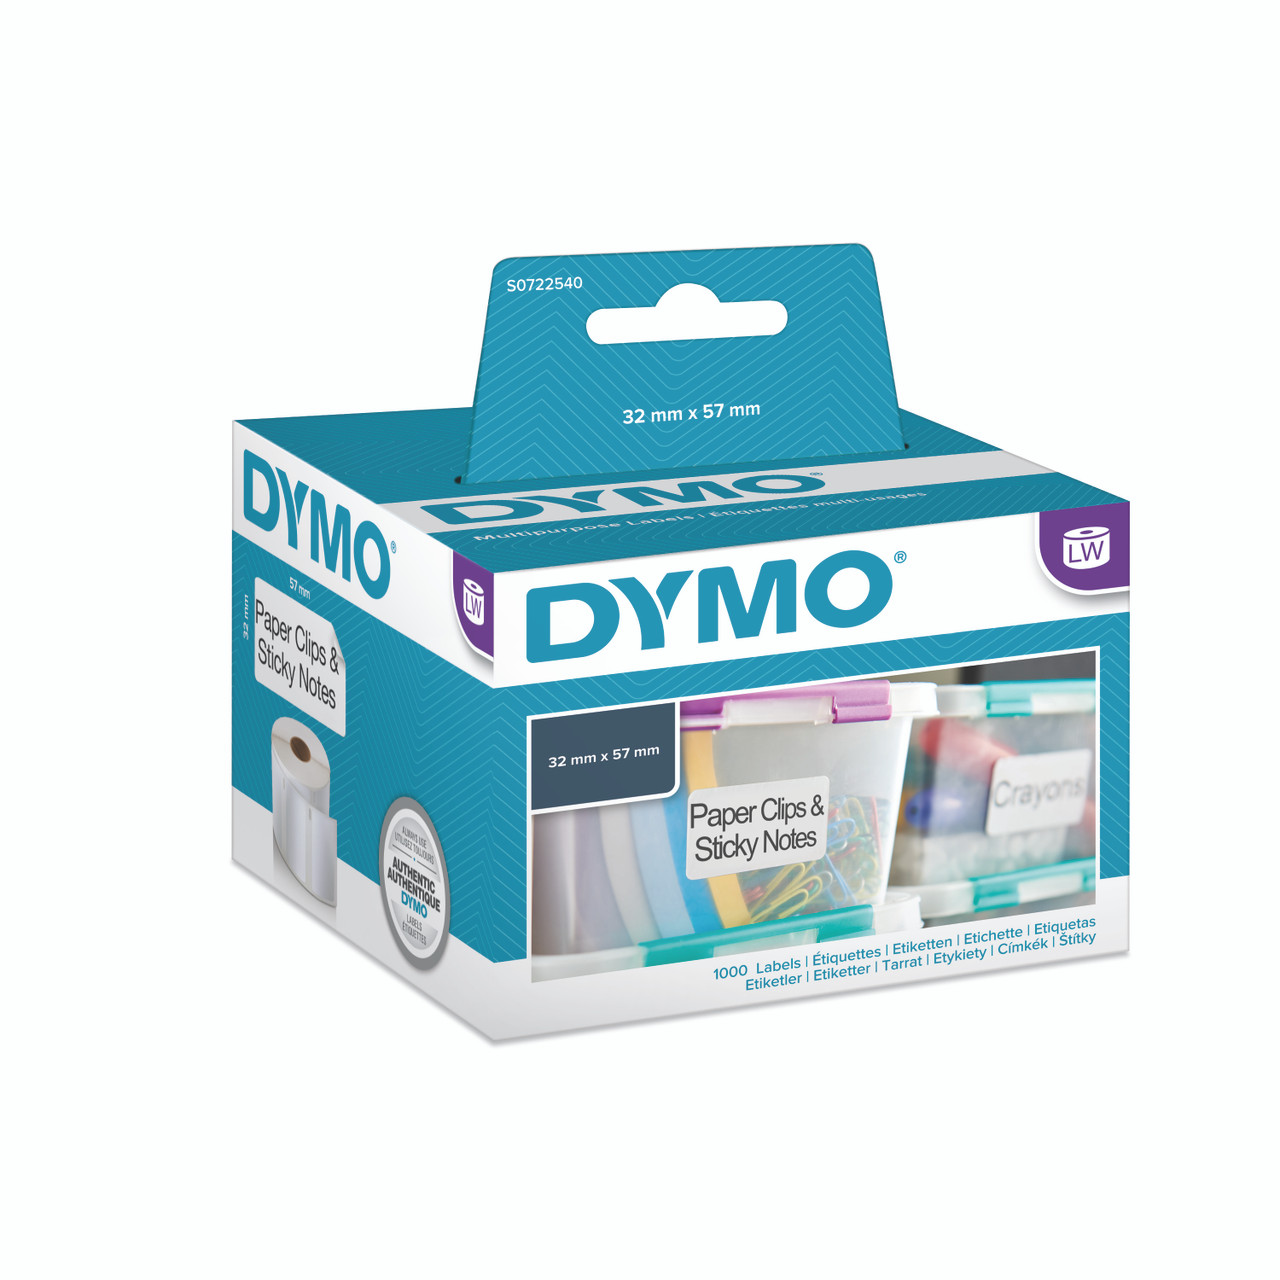 Genuine Dymo 11354-32mm x 57mm Multi Purpose Labels Black on White S0722540